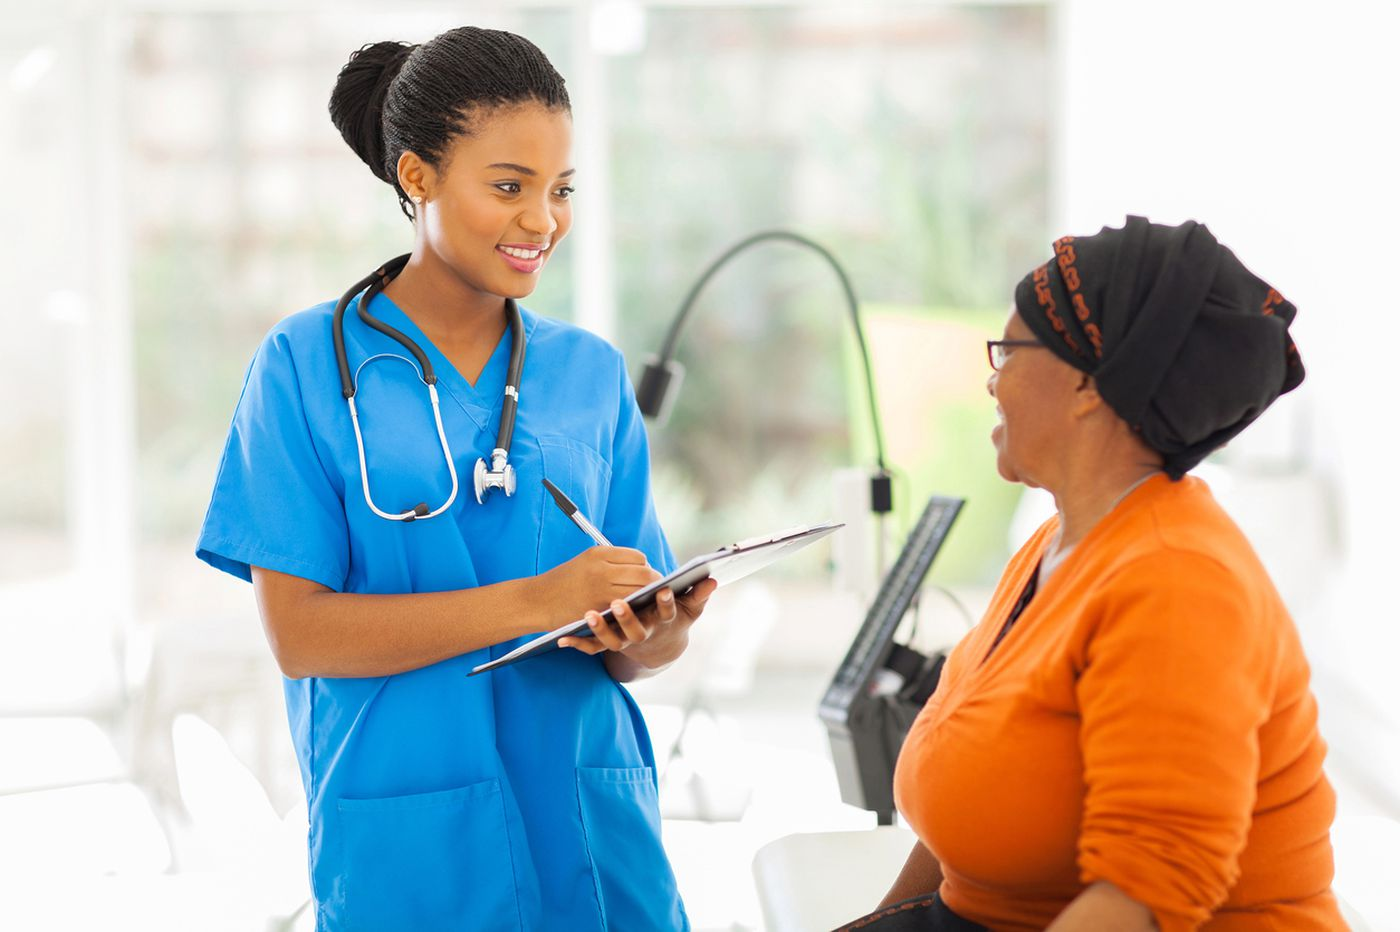 Q&A: What does a nurse practitioner do?